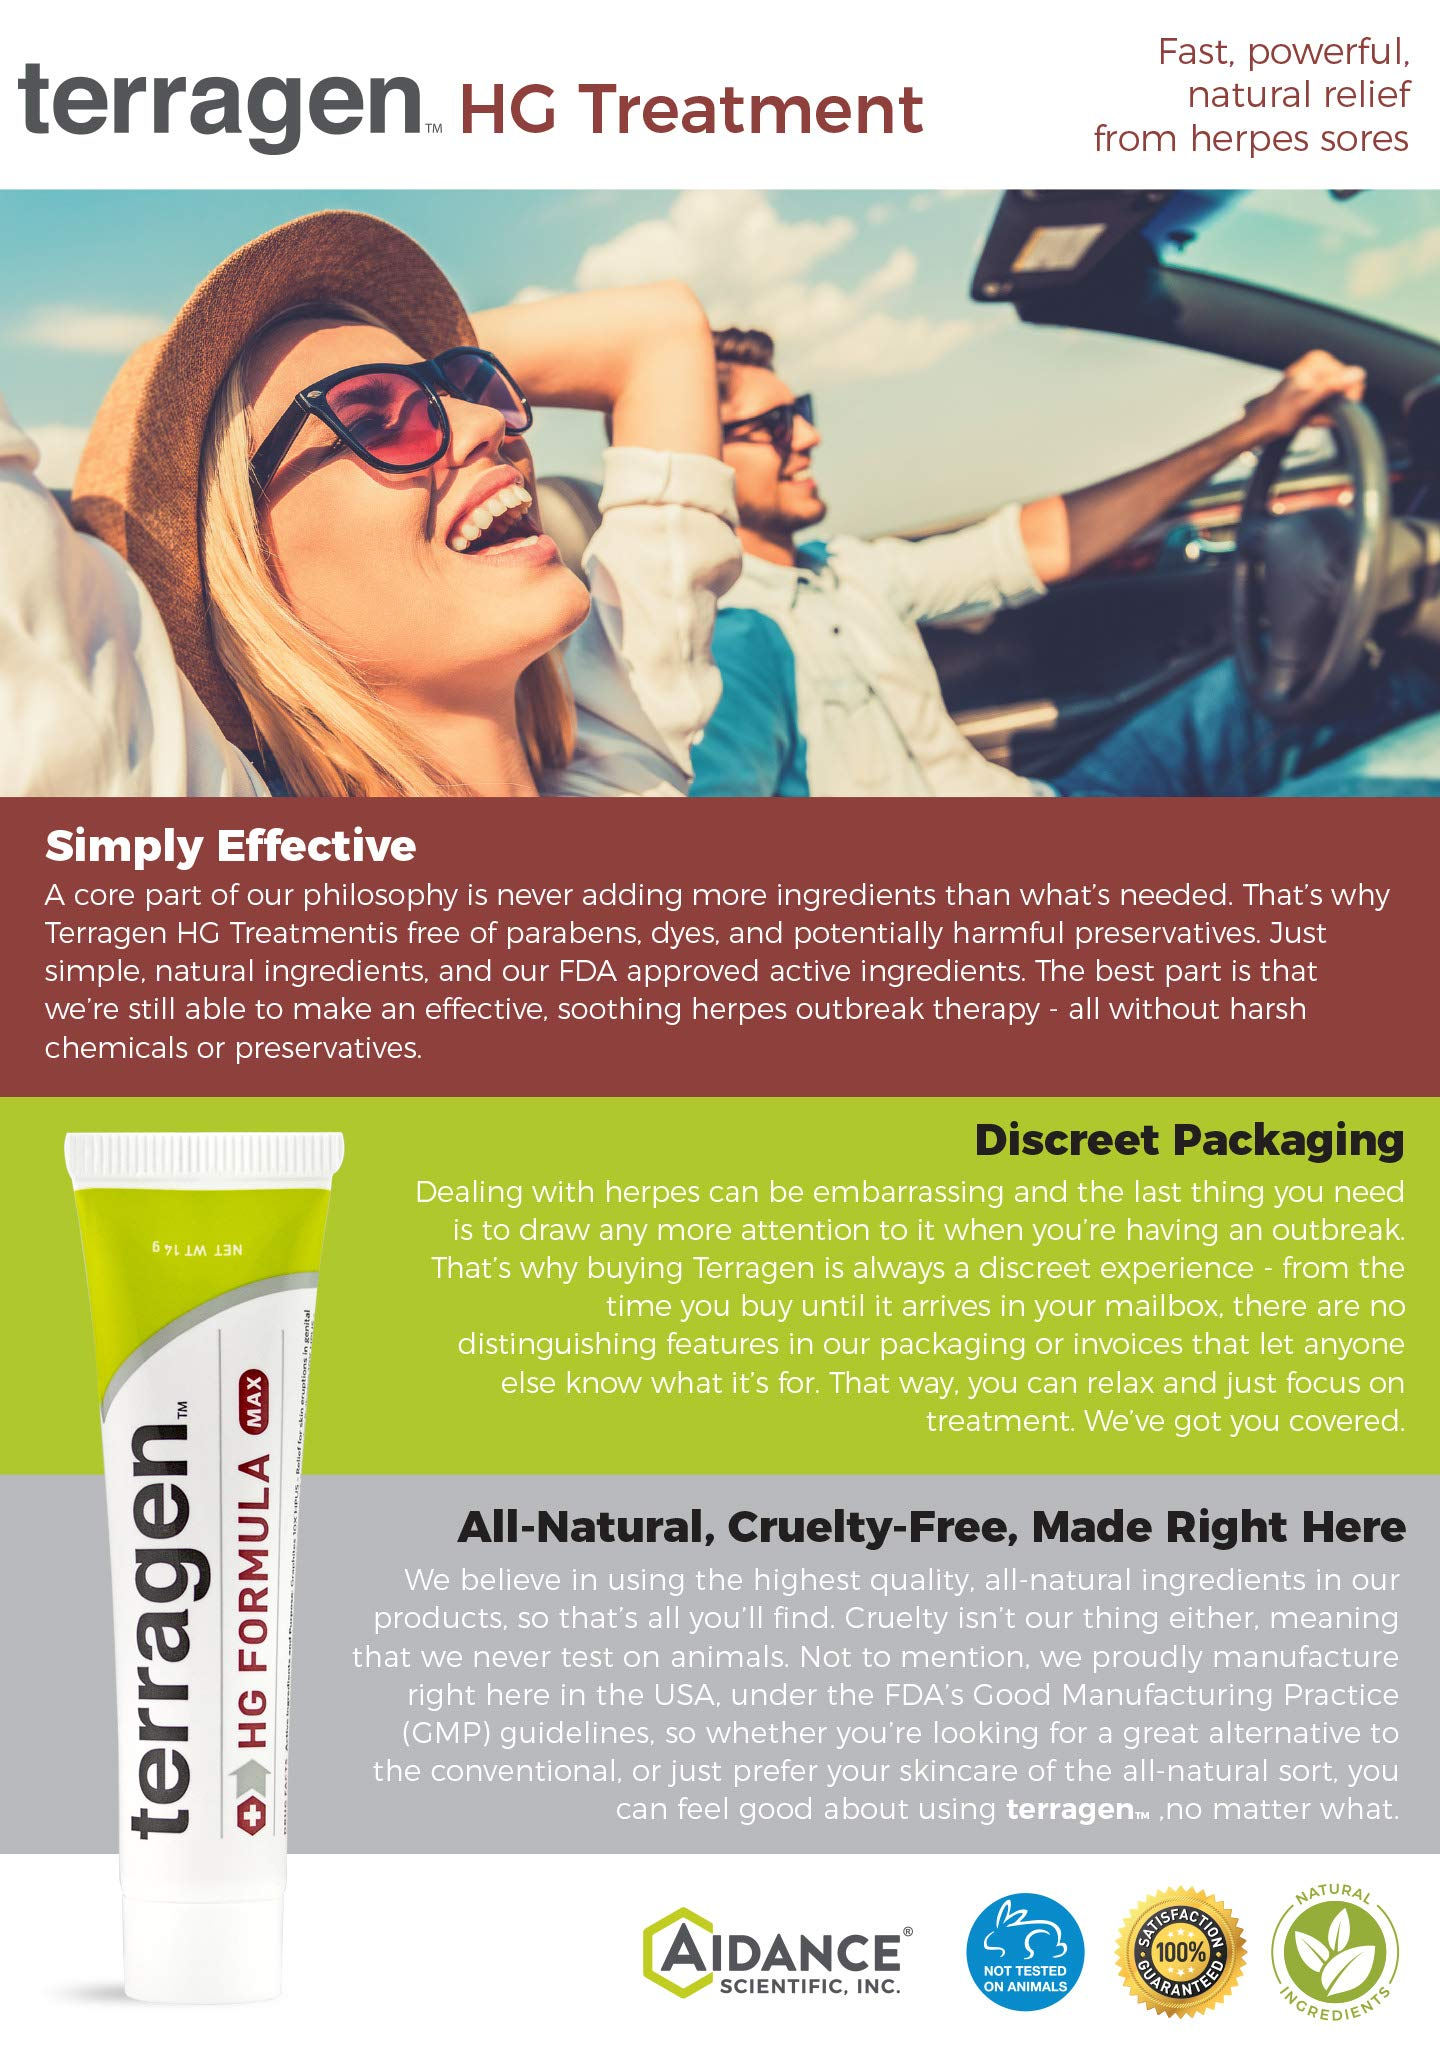 Herpes Outbreak Treatment – HG Formula MAX Patented Pain Free Gentle Natural Treatment for Symptoms Caused from Herpes Outbreak- Discomfort Pain Itch Sores Ulcers Blisters by Terragen - 14gm